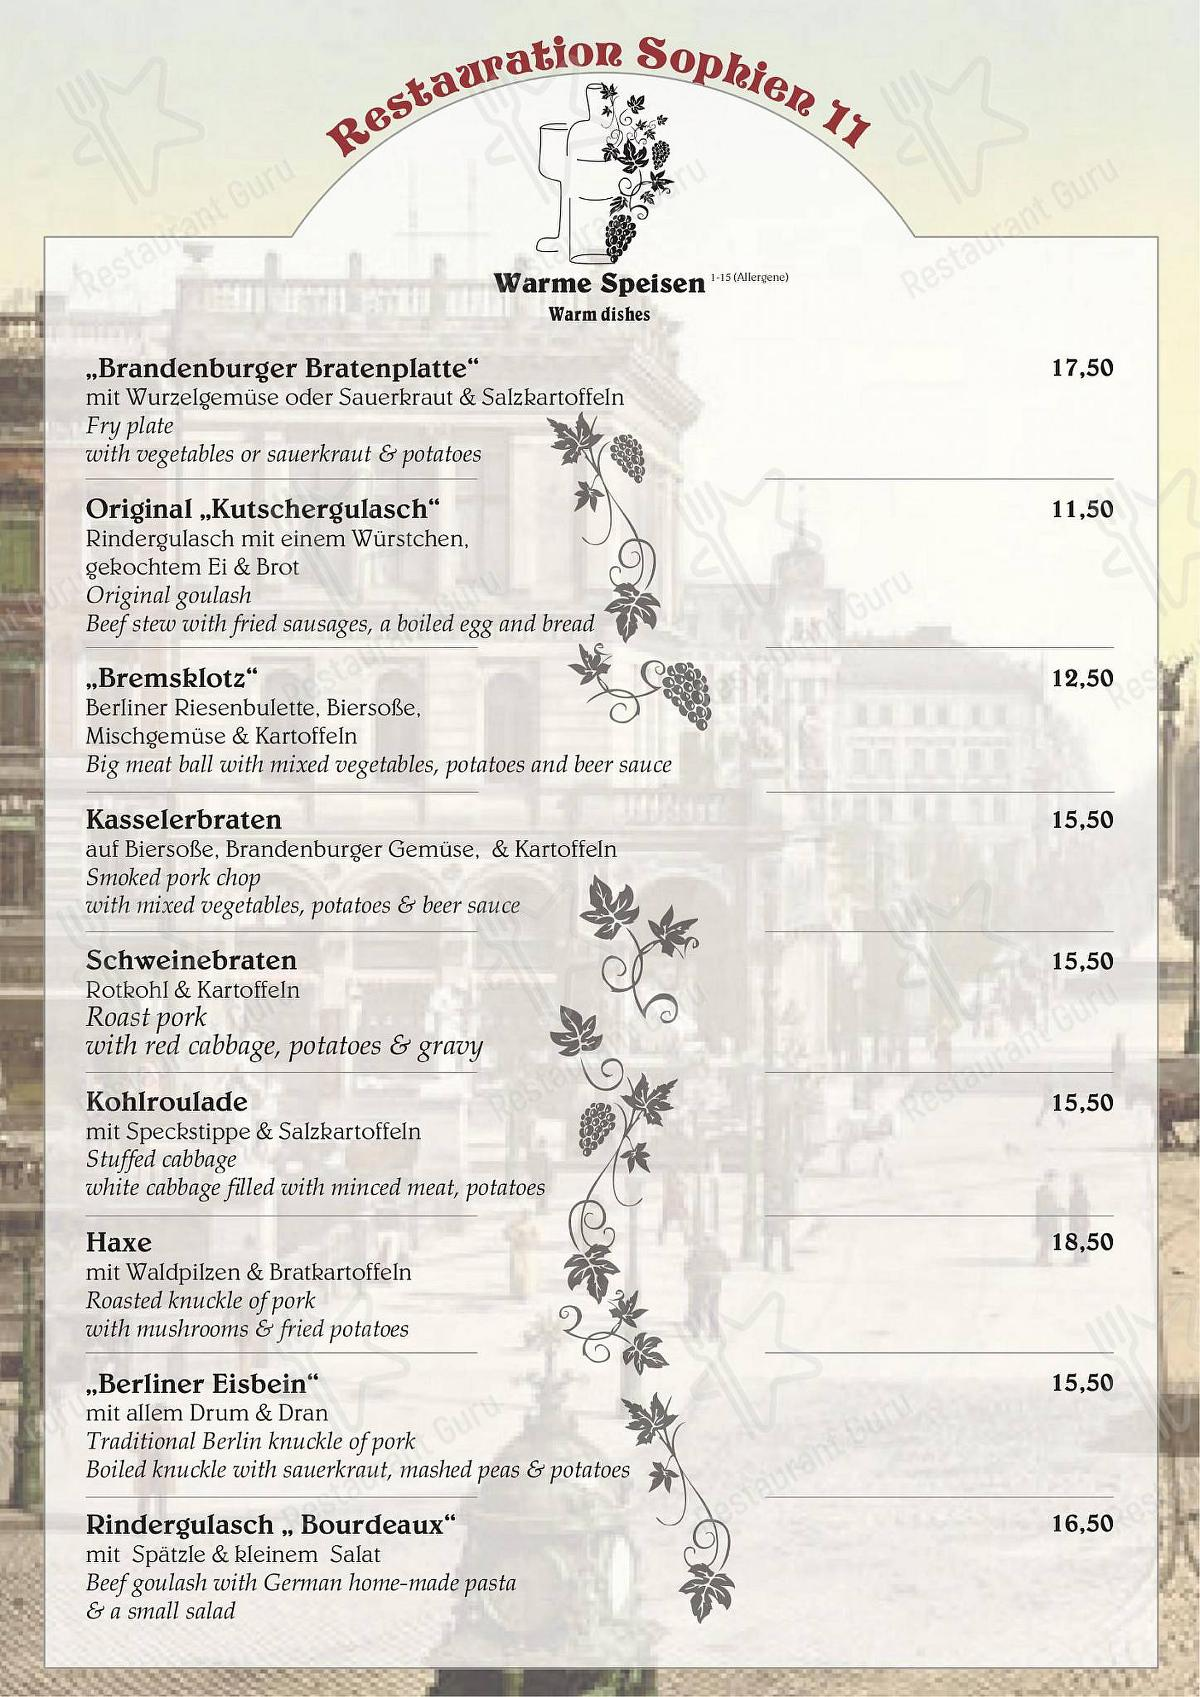 Check out the menu for Sophien 11